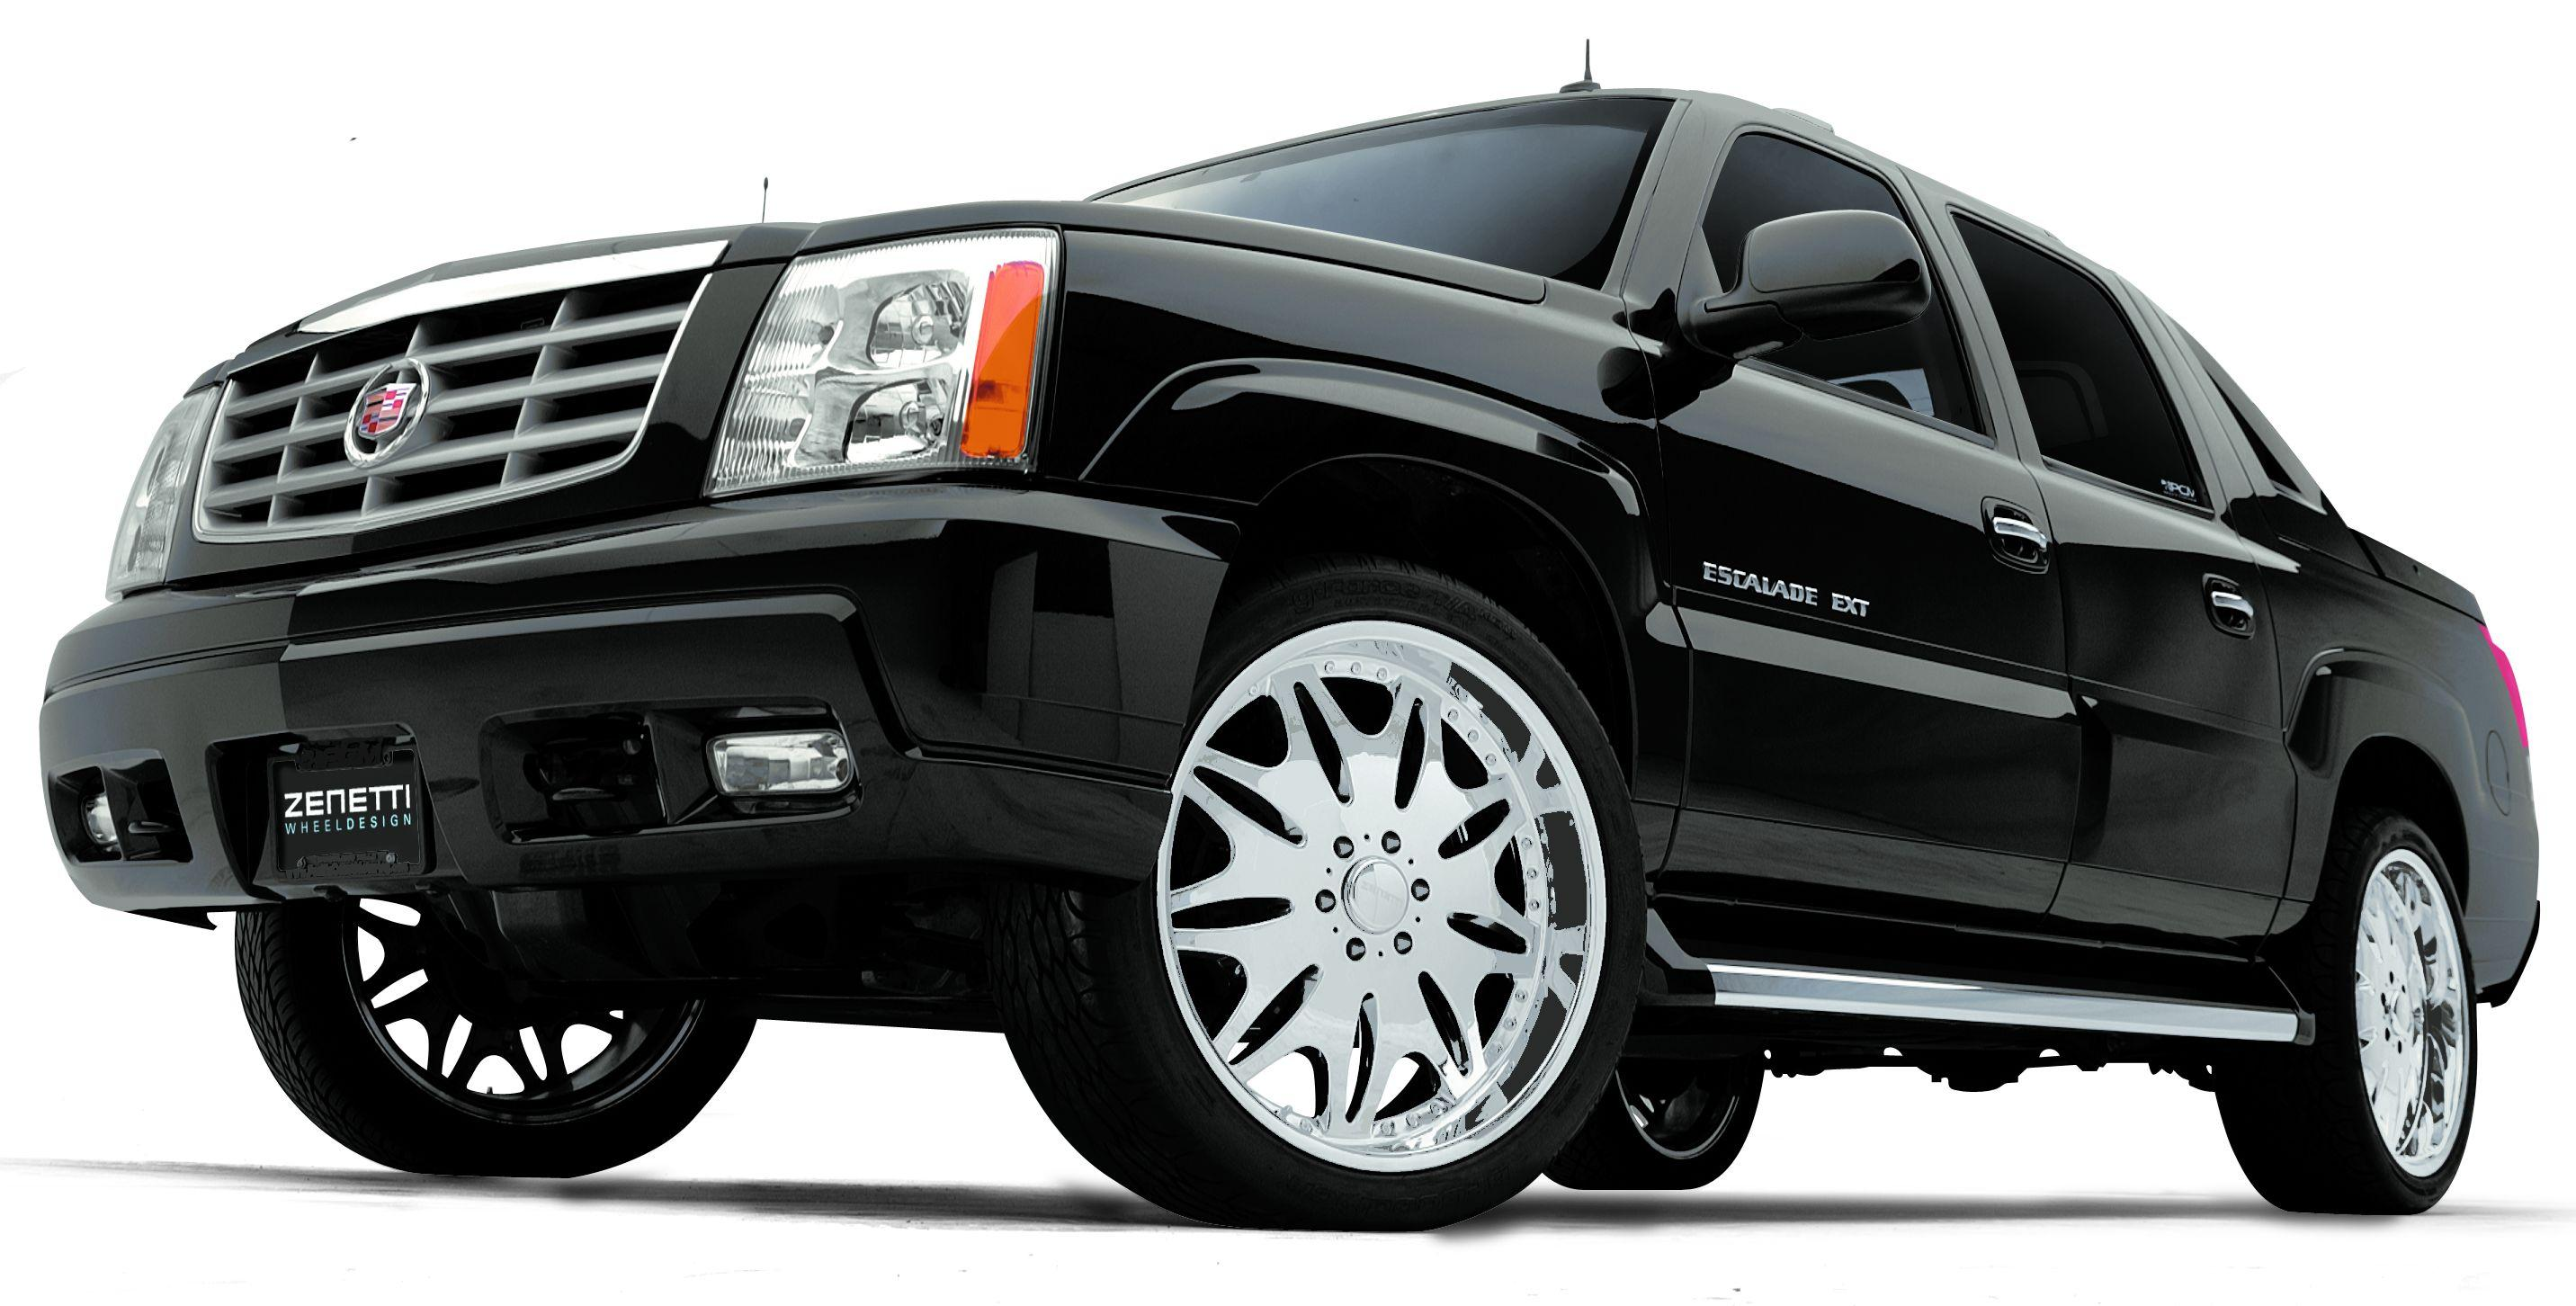 Cadillac Escalade EXT photo #29579